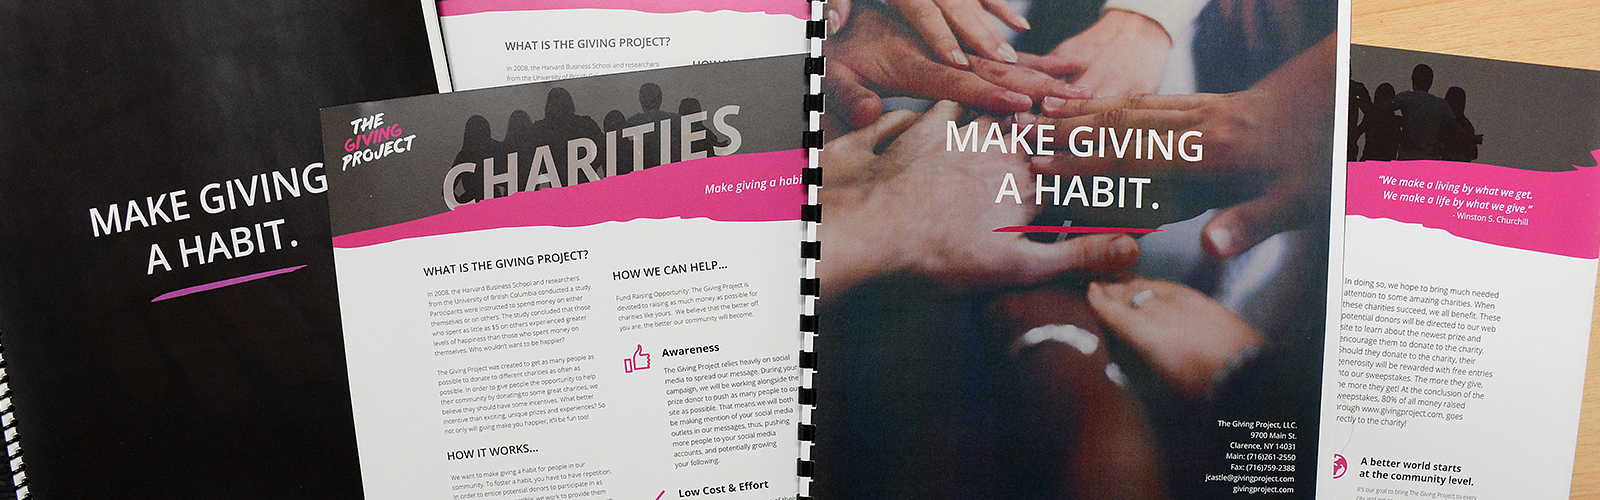 The Giving Project helps partner charities with high-profile companies and individuals to increase fundraising goals. <span class=&apos;image-credits&apos;>Dan Cappellazzo</span>